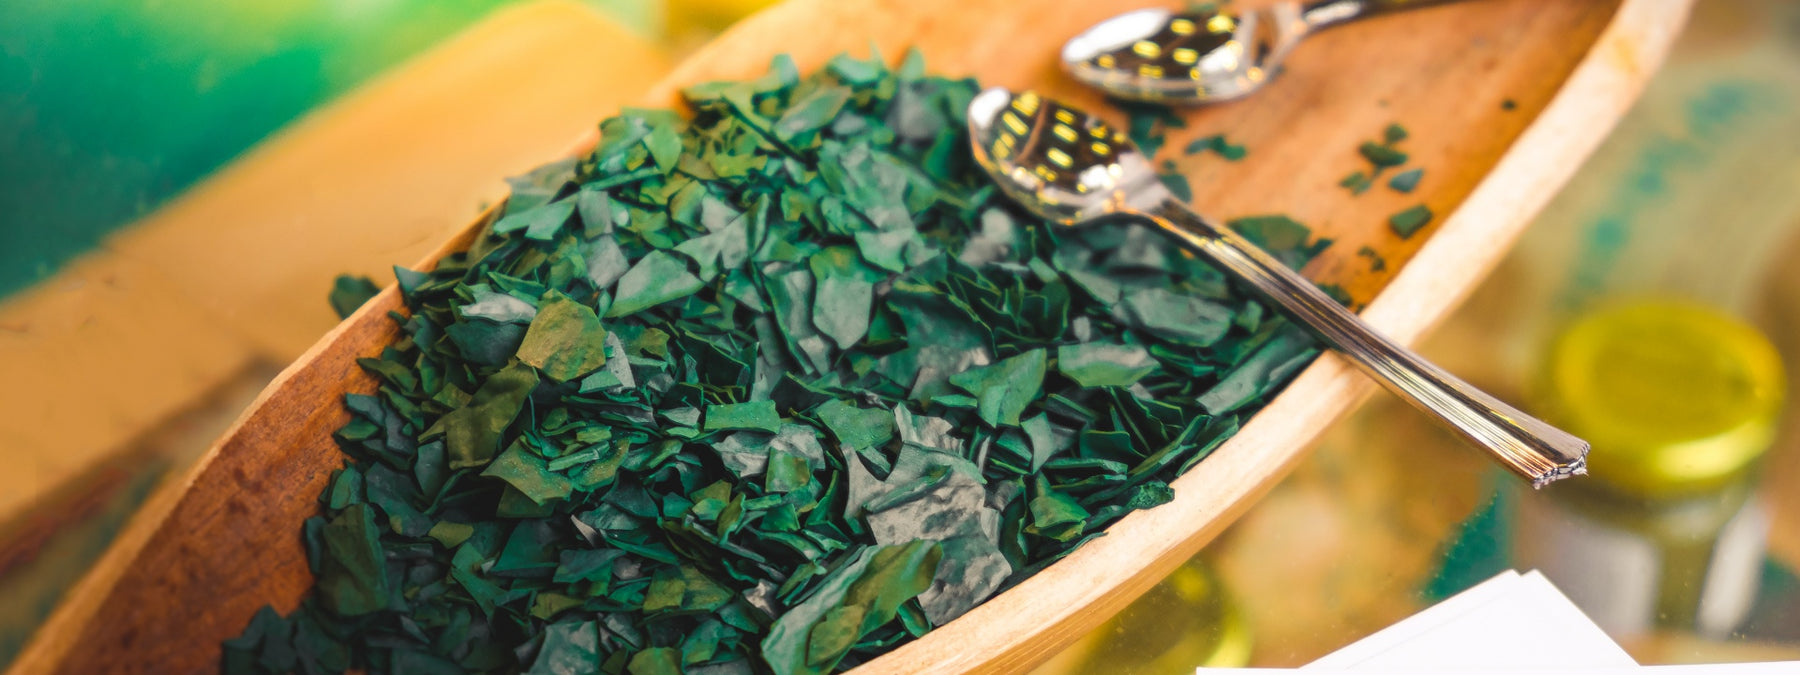 Spirulina for Overall Health: Benefits, Side Effects & FAQ